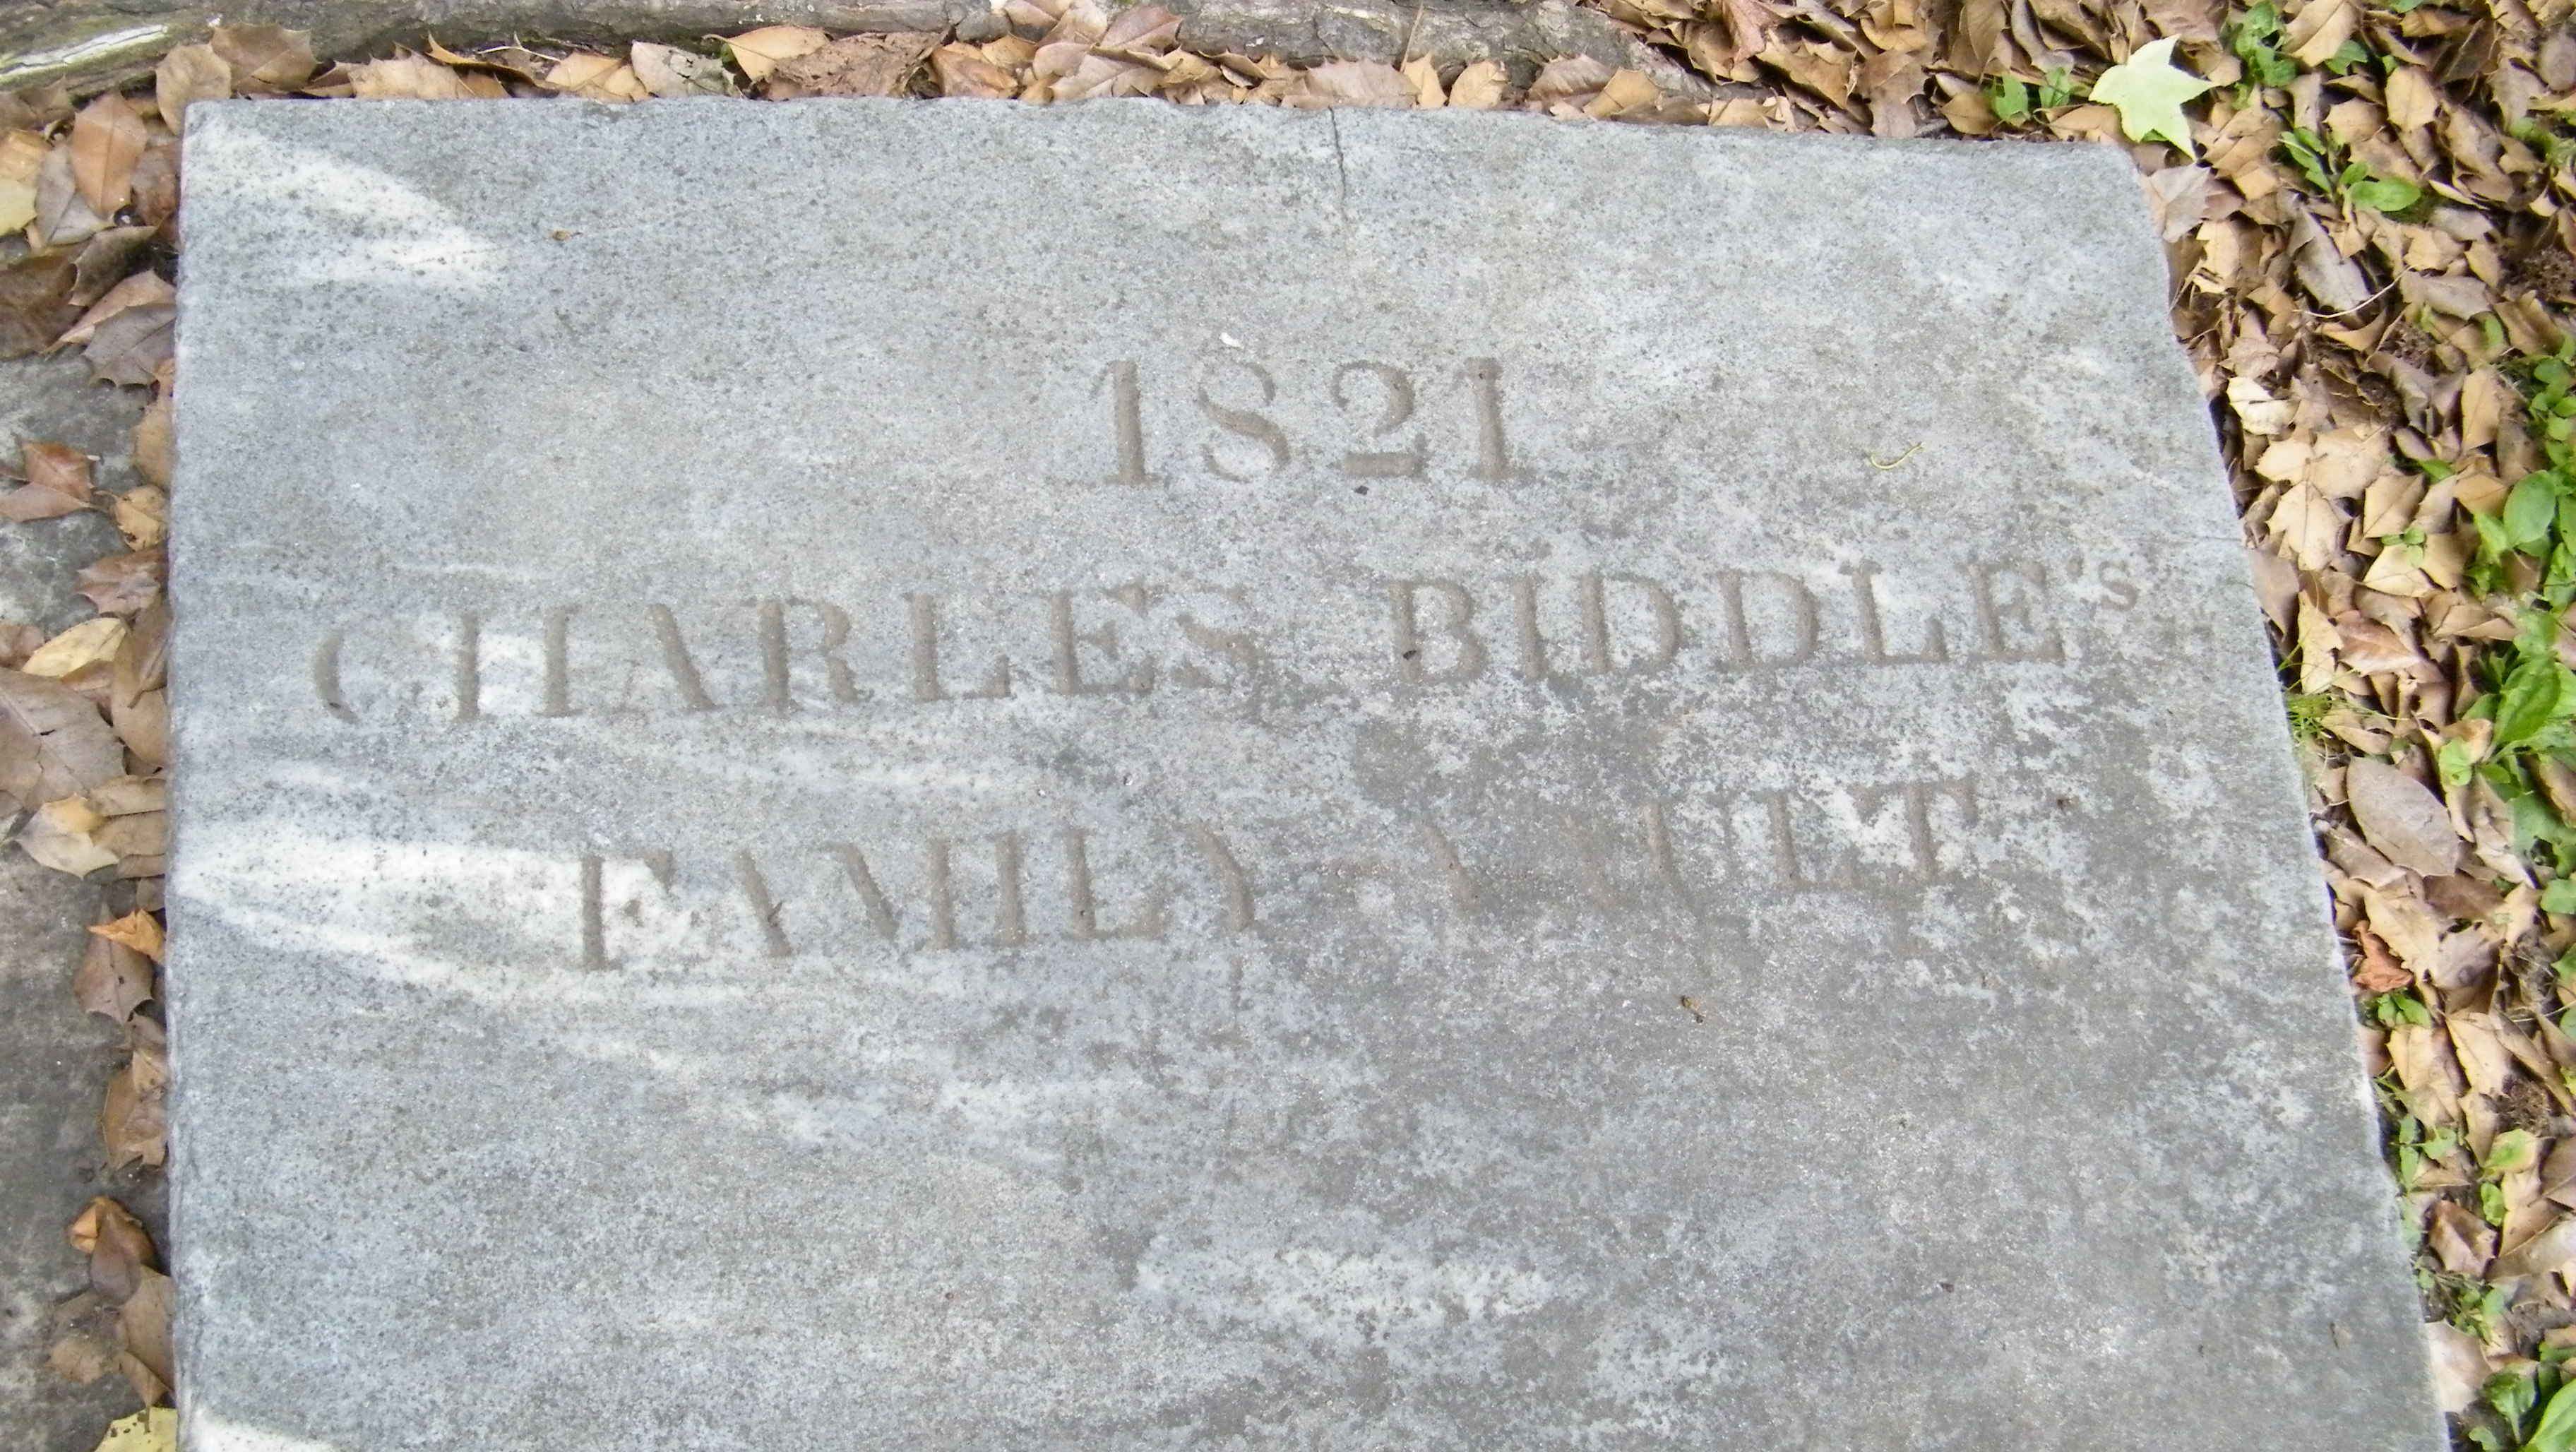 Charles Biddle